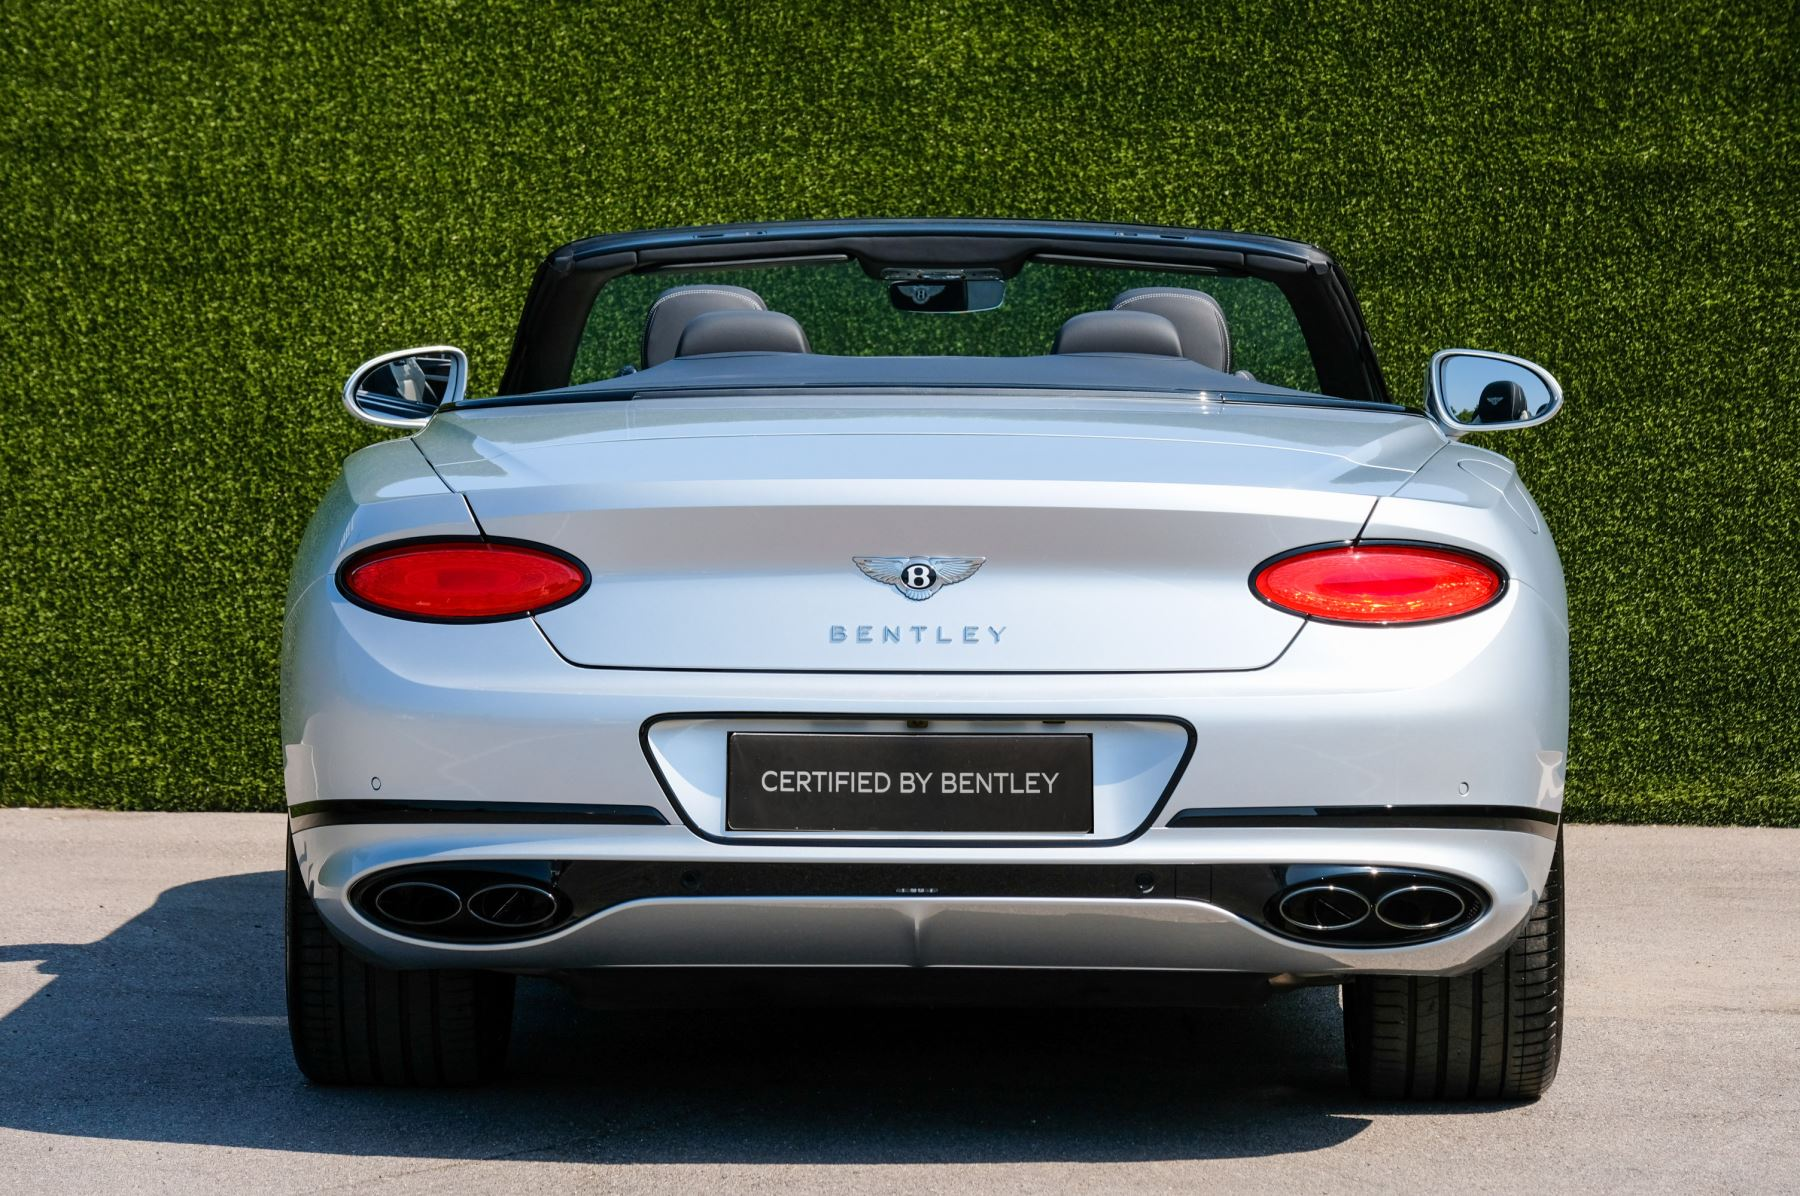 Bentley Continental GTC 4.0 V8 - Mulliner Driving Specification and Blackline Specification with 22 Inch Alloys image 4